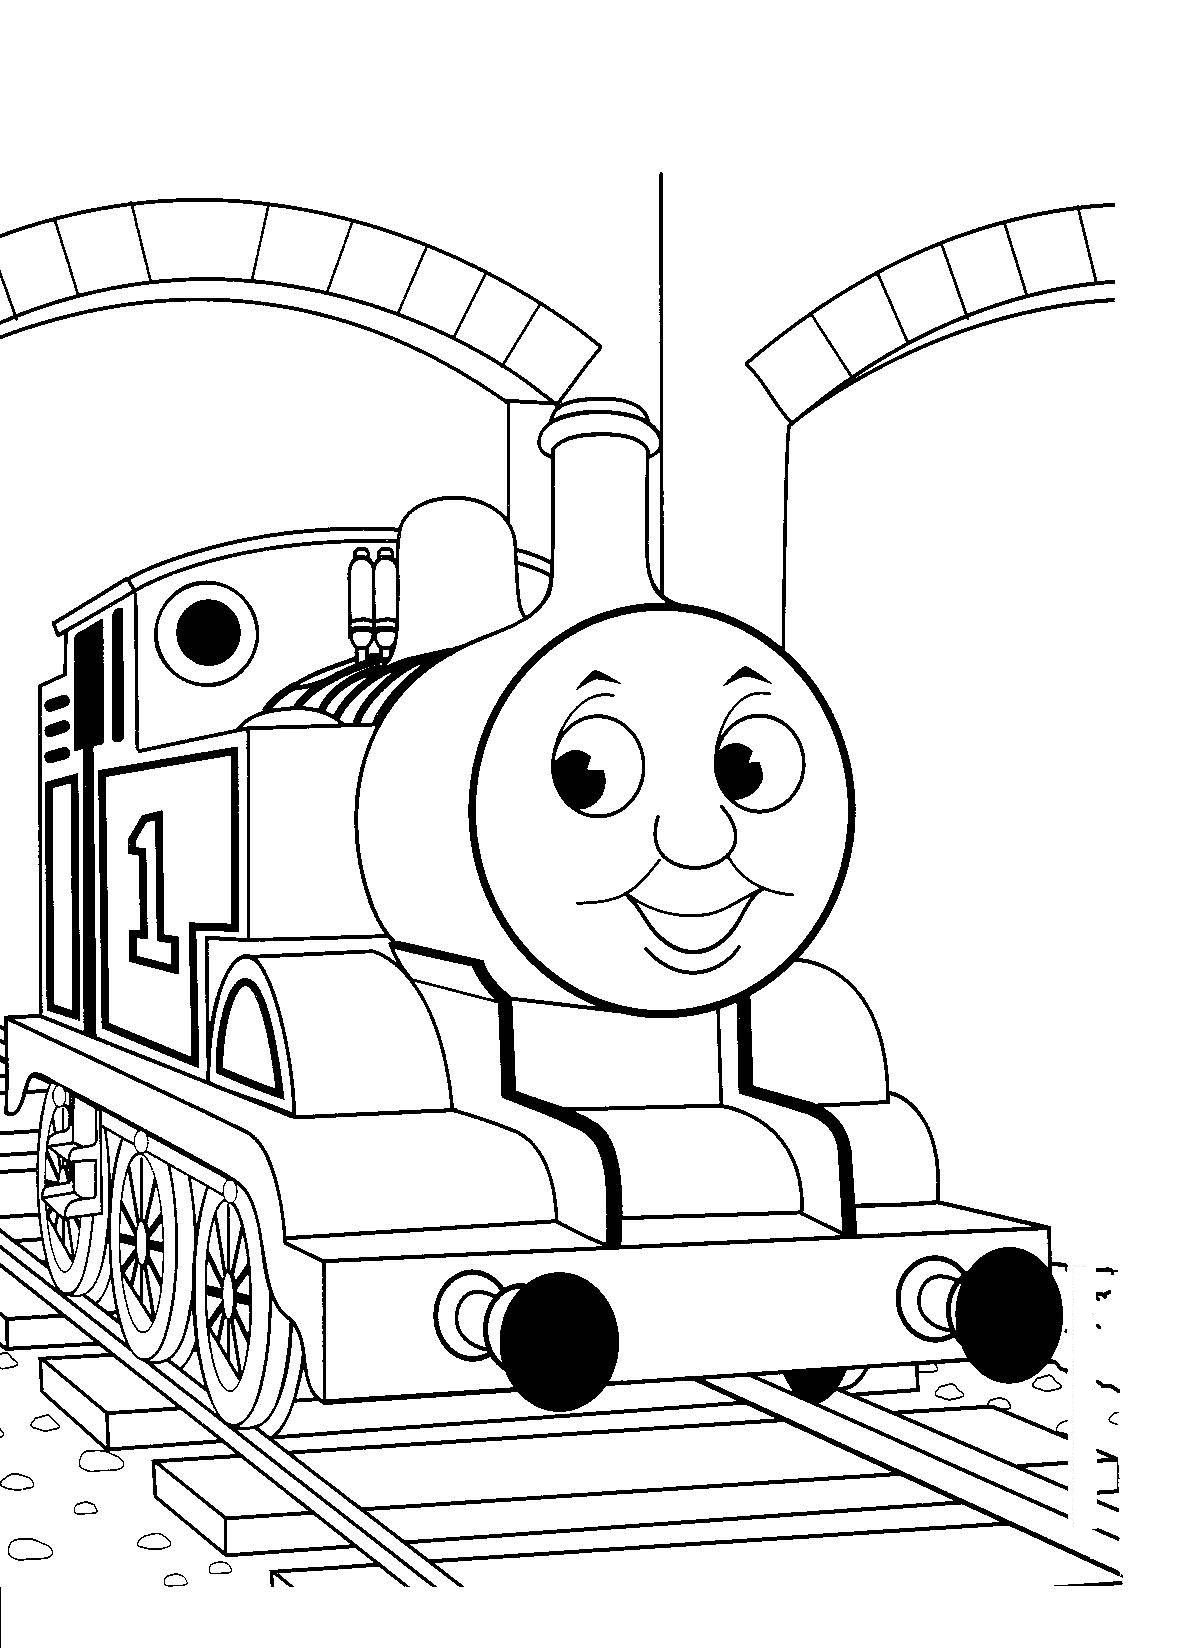 coloring train pages train coloring pages coloring pages to download and print pages train coloring